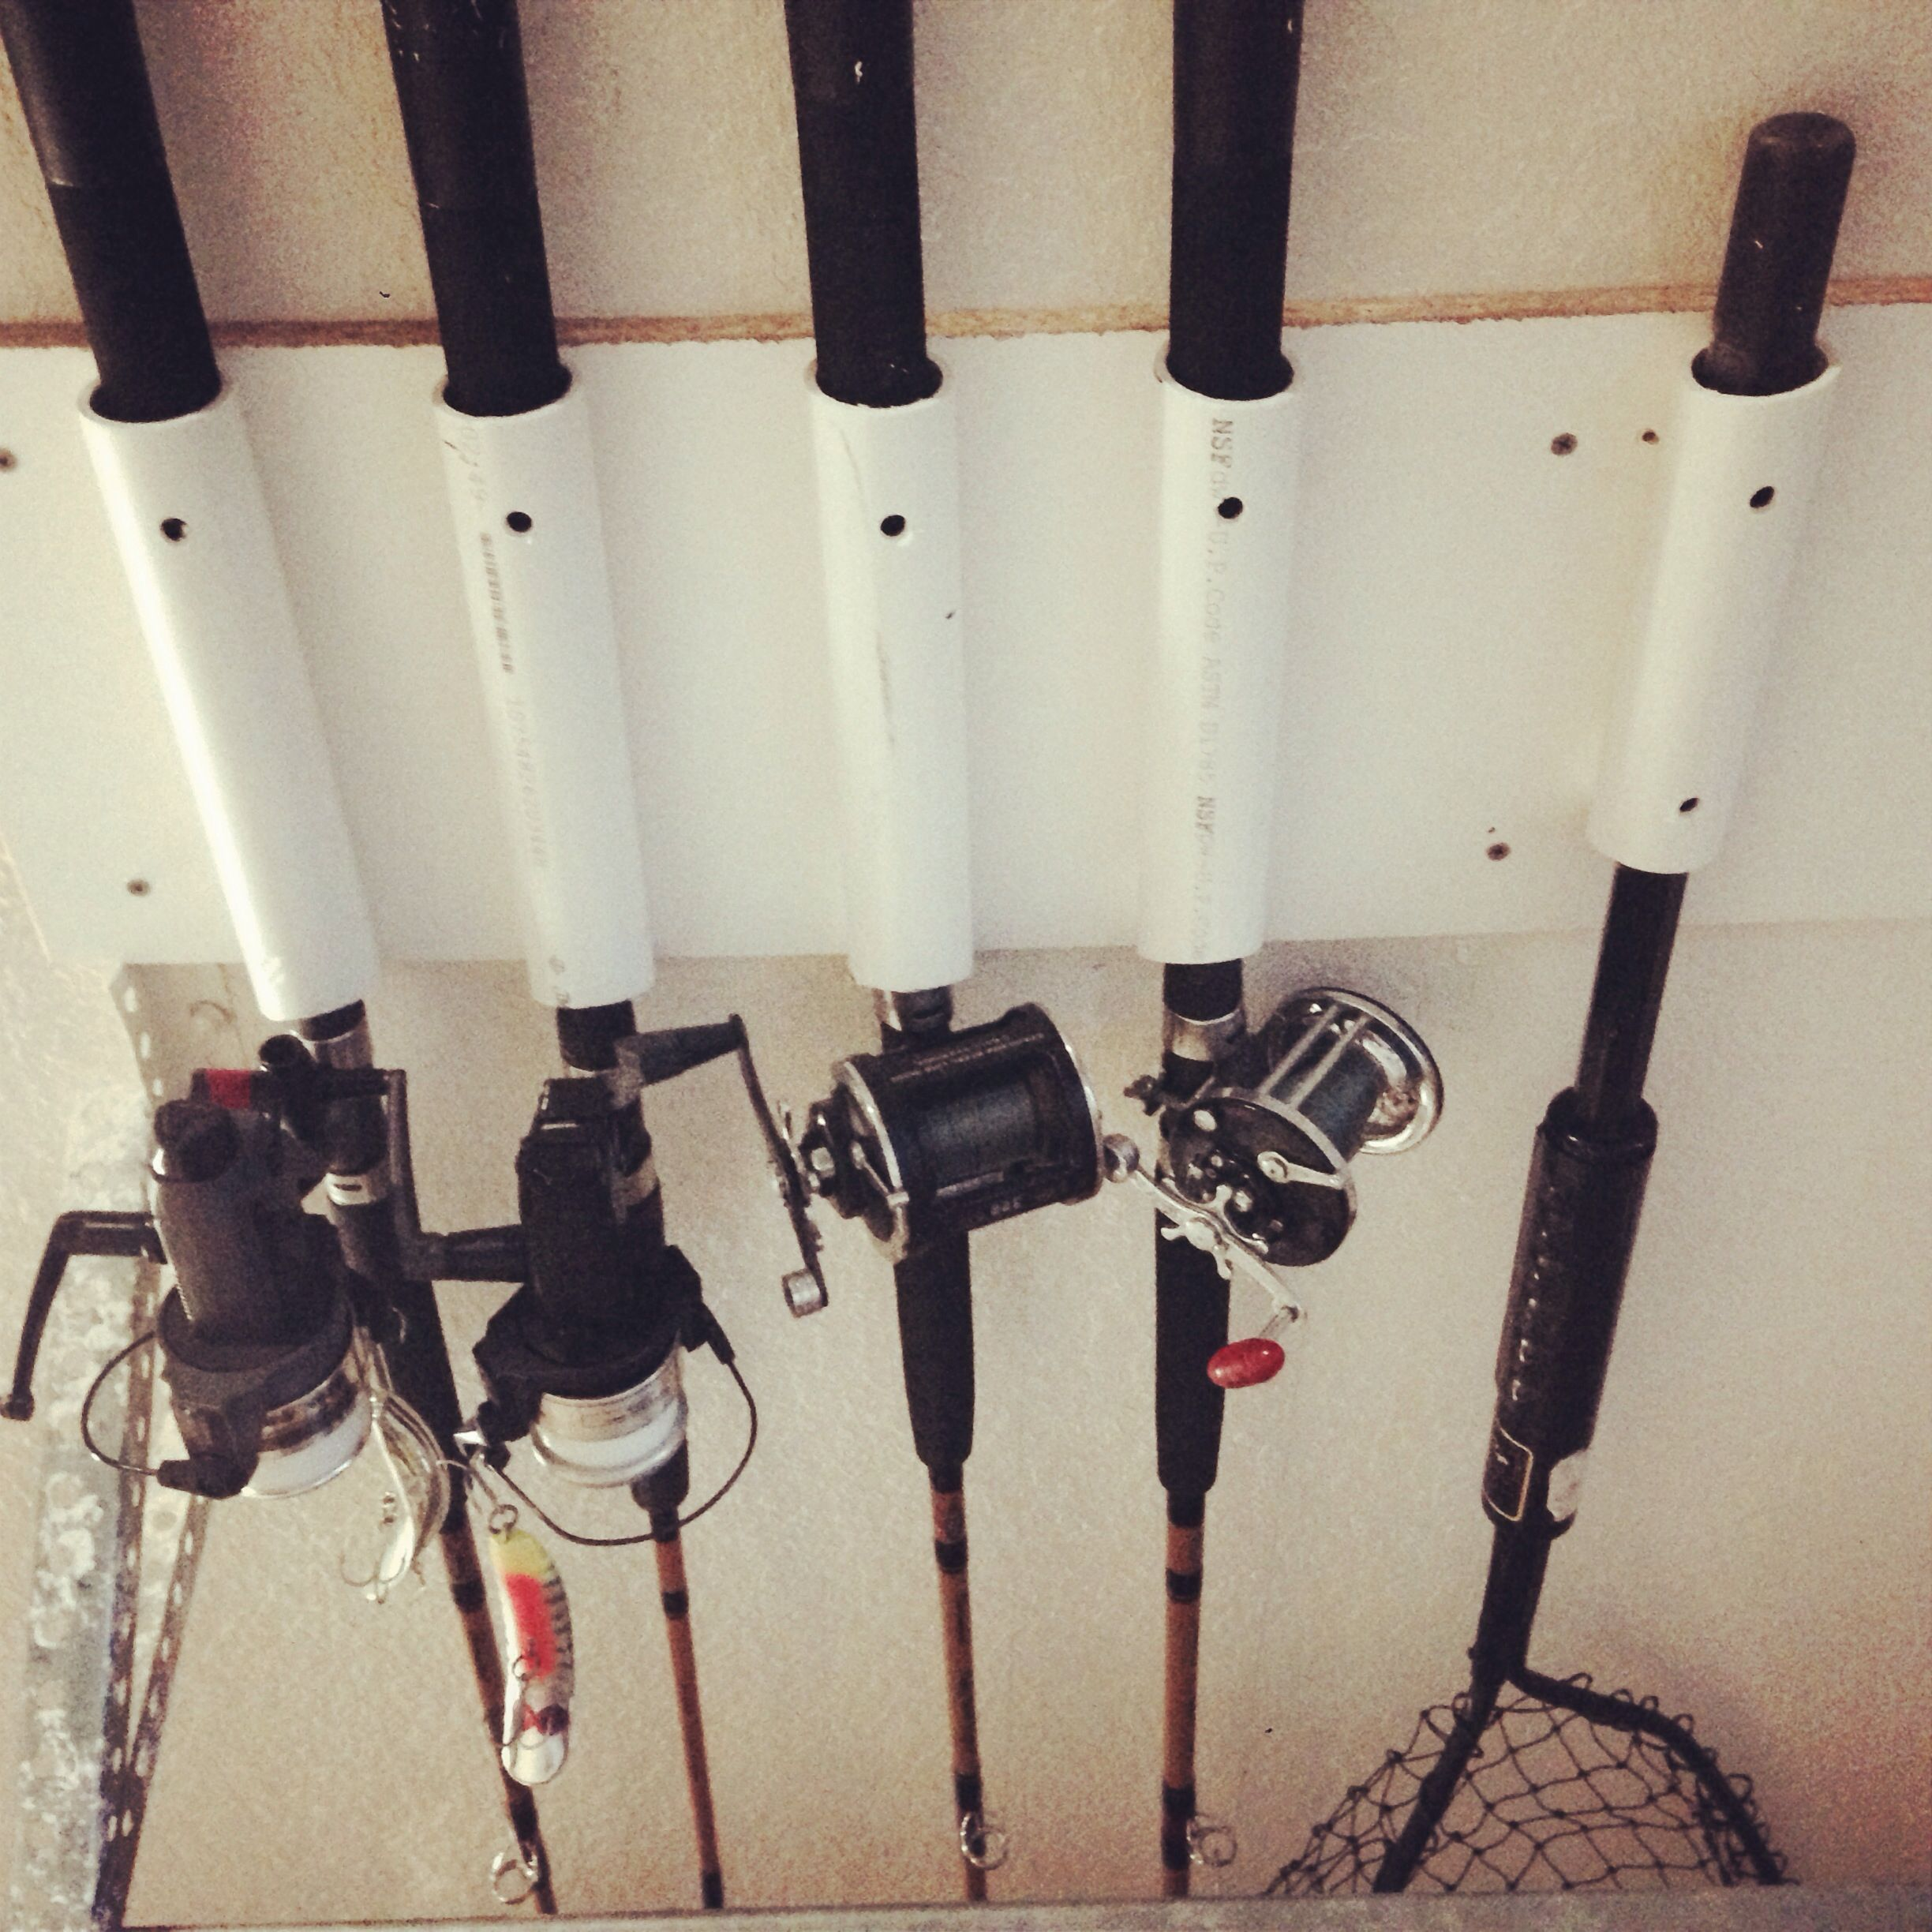 Garage ceiling fishing rod storage by Aaron